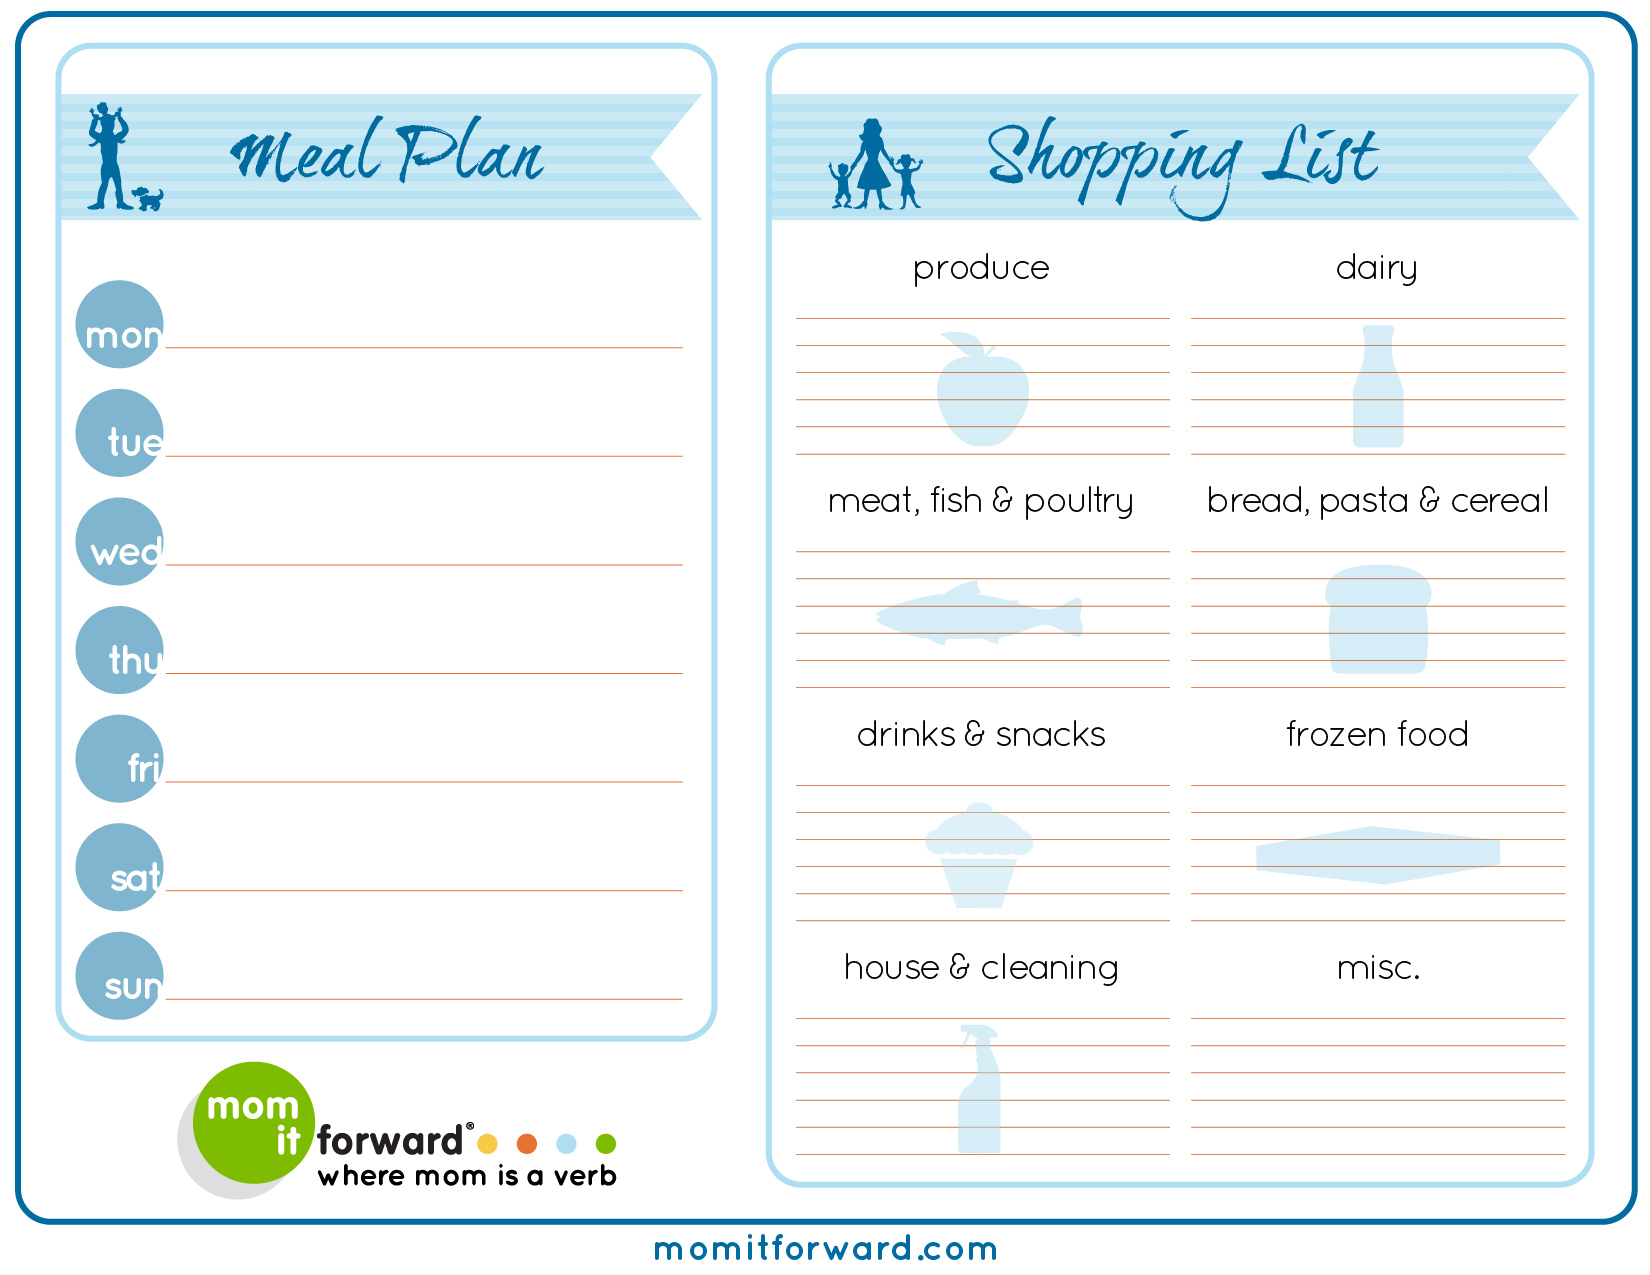 Worksheets Meal Planning Worksheet meal plan worksheet printable mom it forwardmom forward